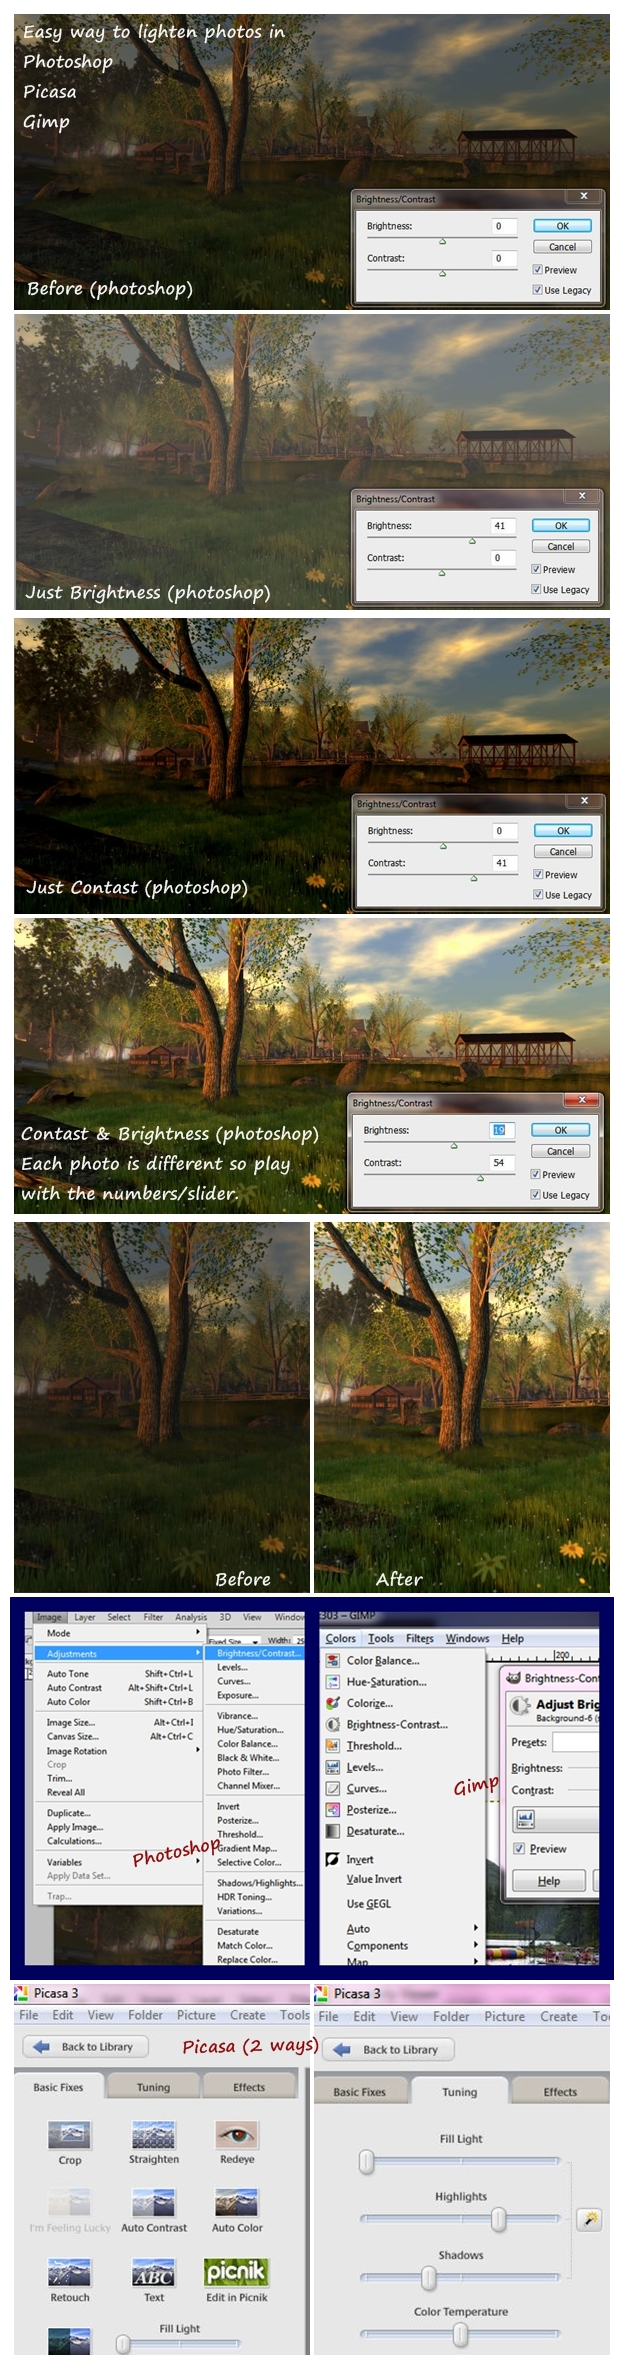 Easy ways to lighten a dark photo in Photoshop, Picasa, Gimp